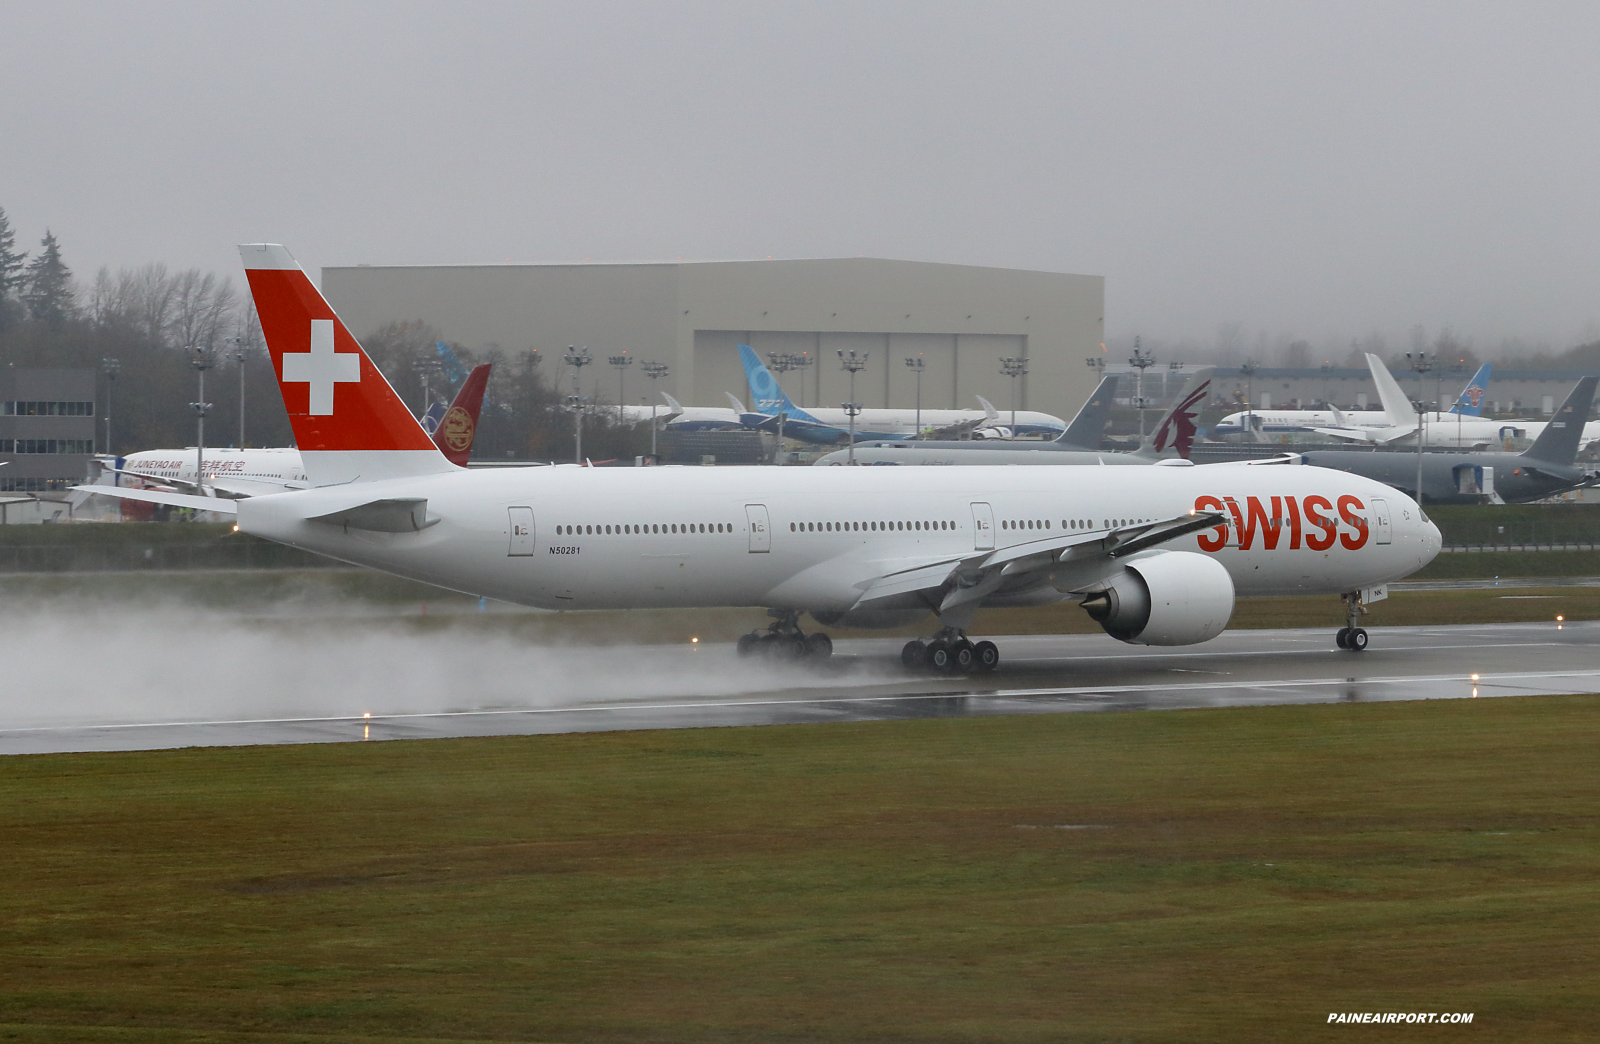 Swiss 777 HB-JNK at Paine Field